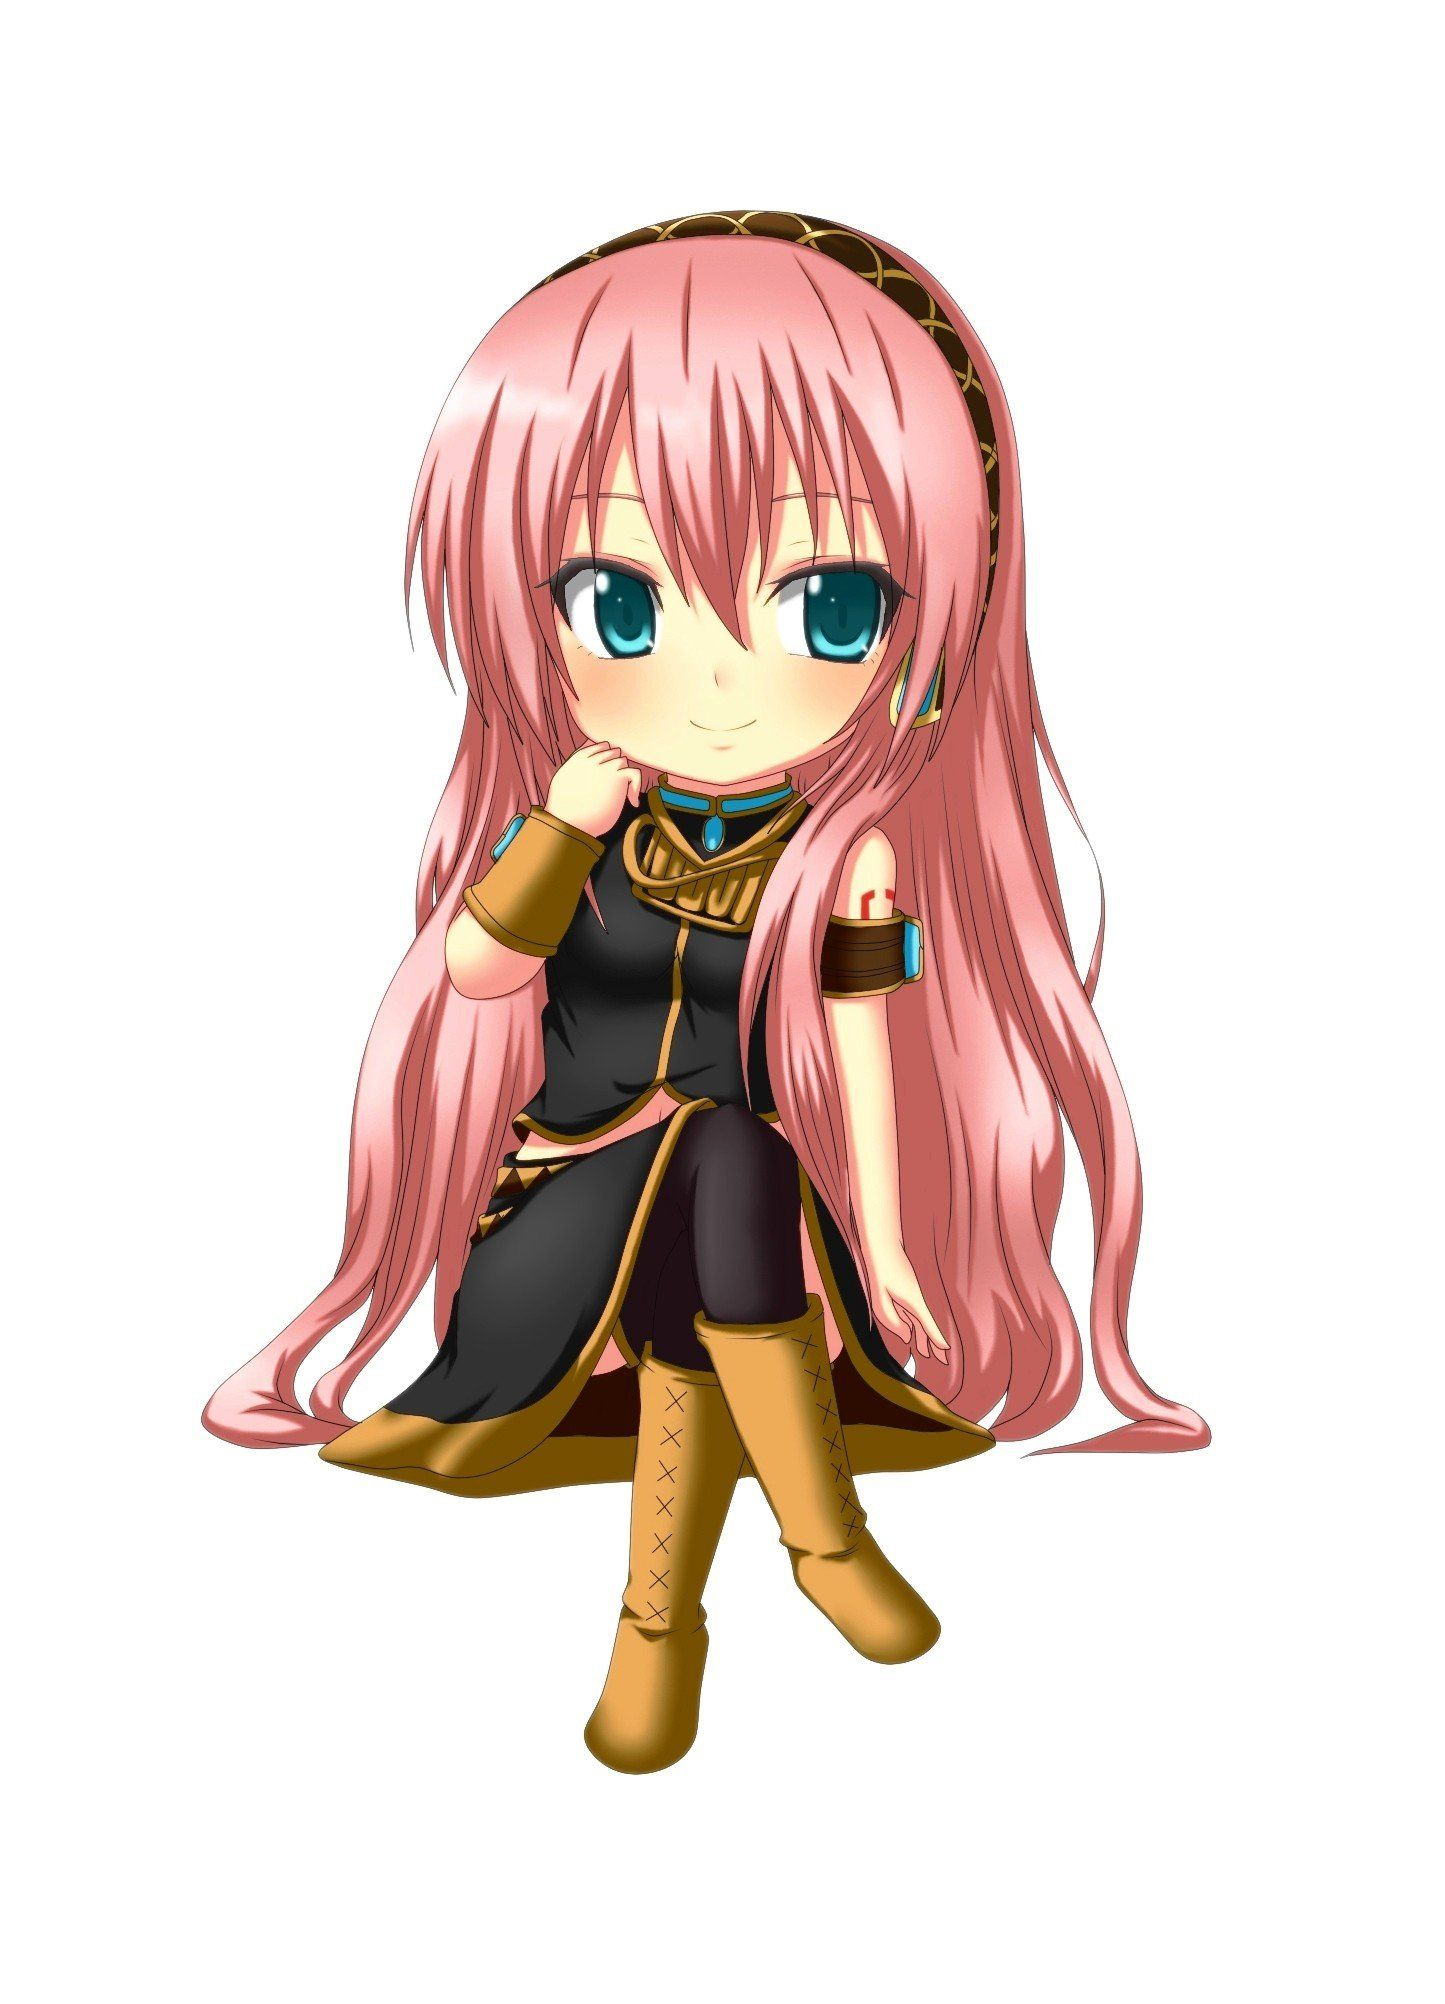 Vocaloid Megurine Luka chibi long hair pink hair aqua eyes